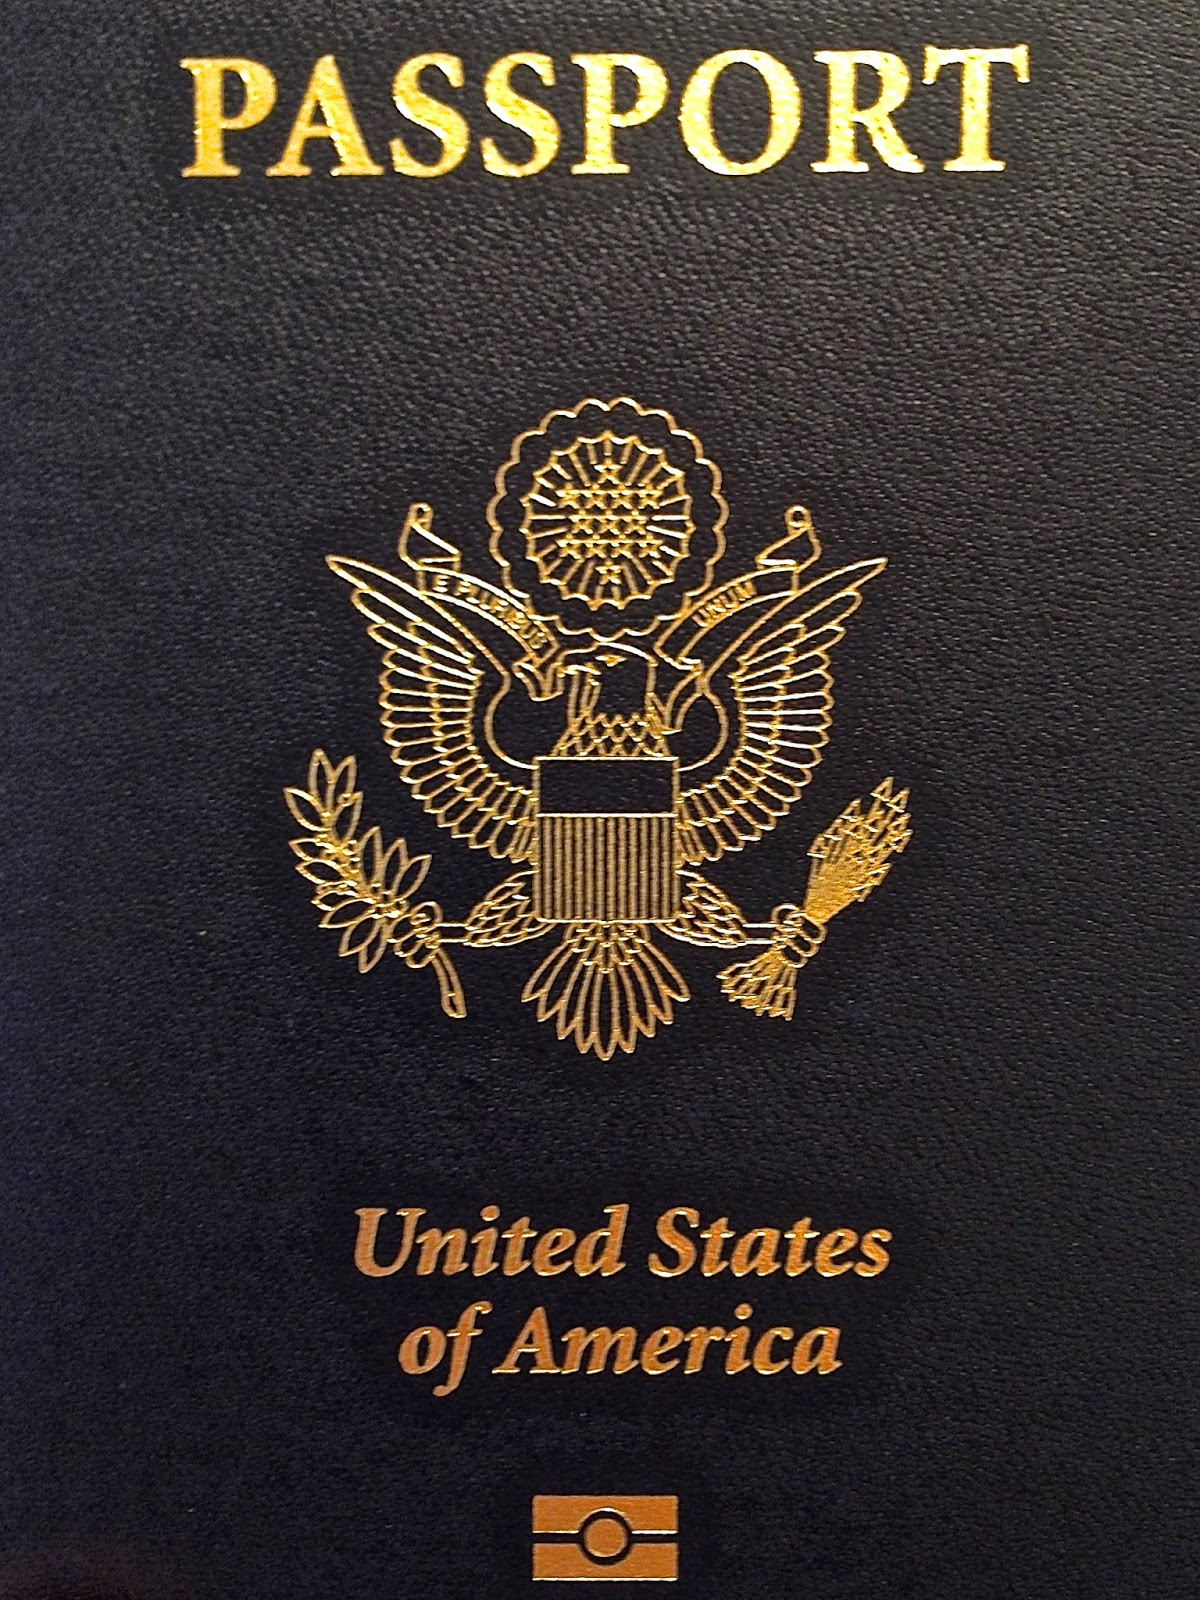 United States of America passport book